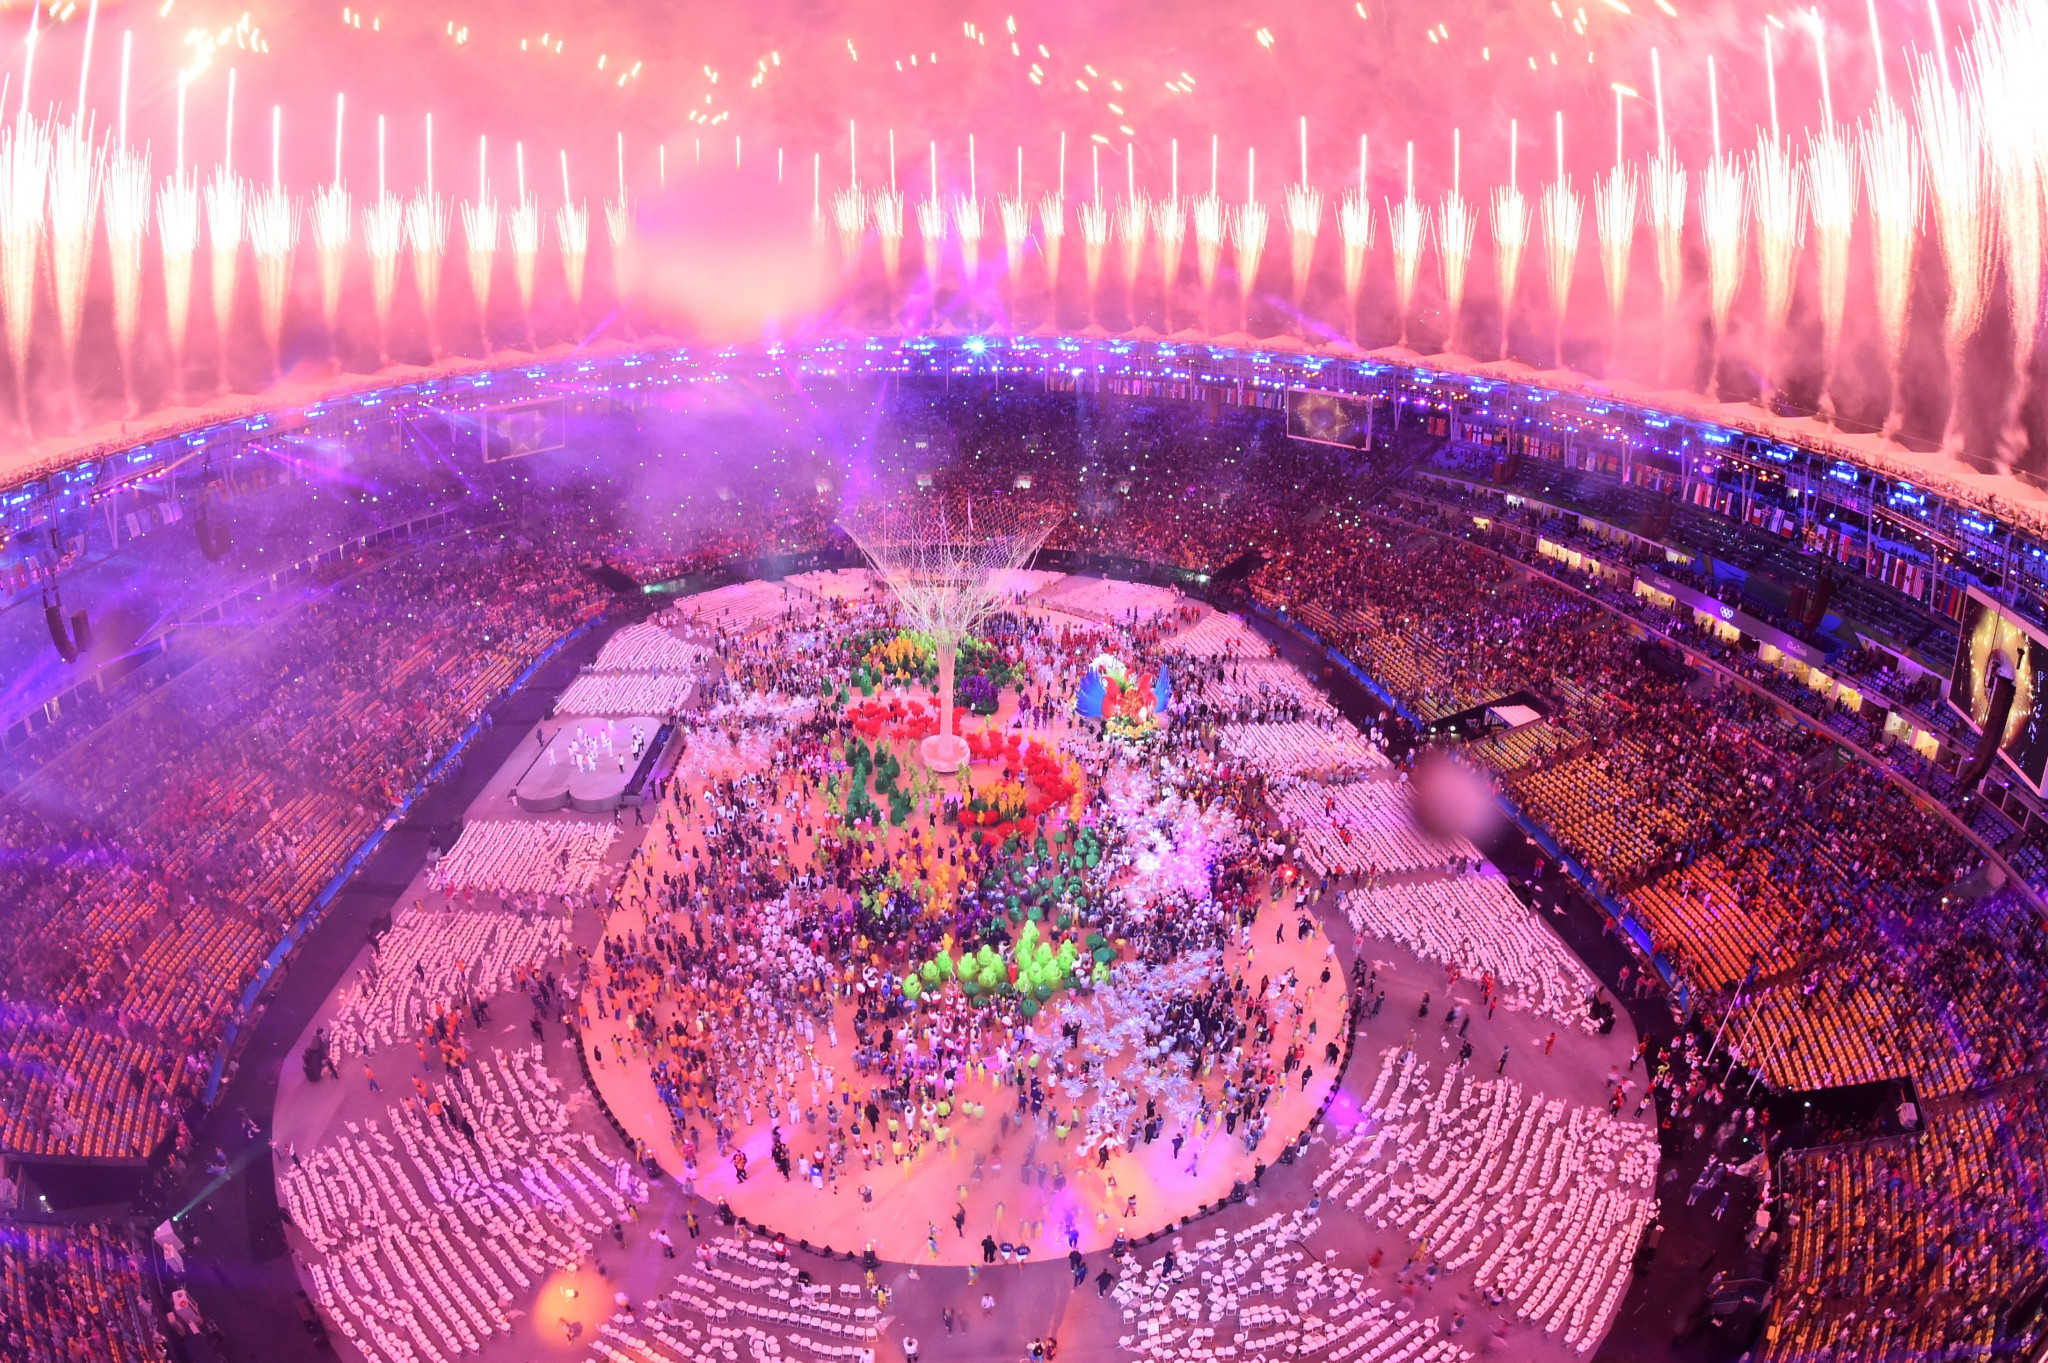 New independent study claims Rio 2016 Olympic Games provided significant economic benefit to host city